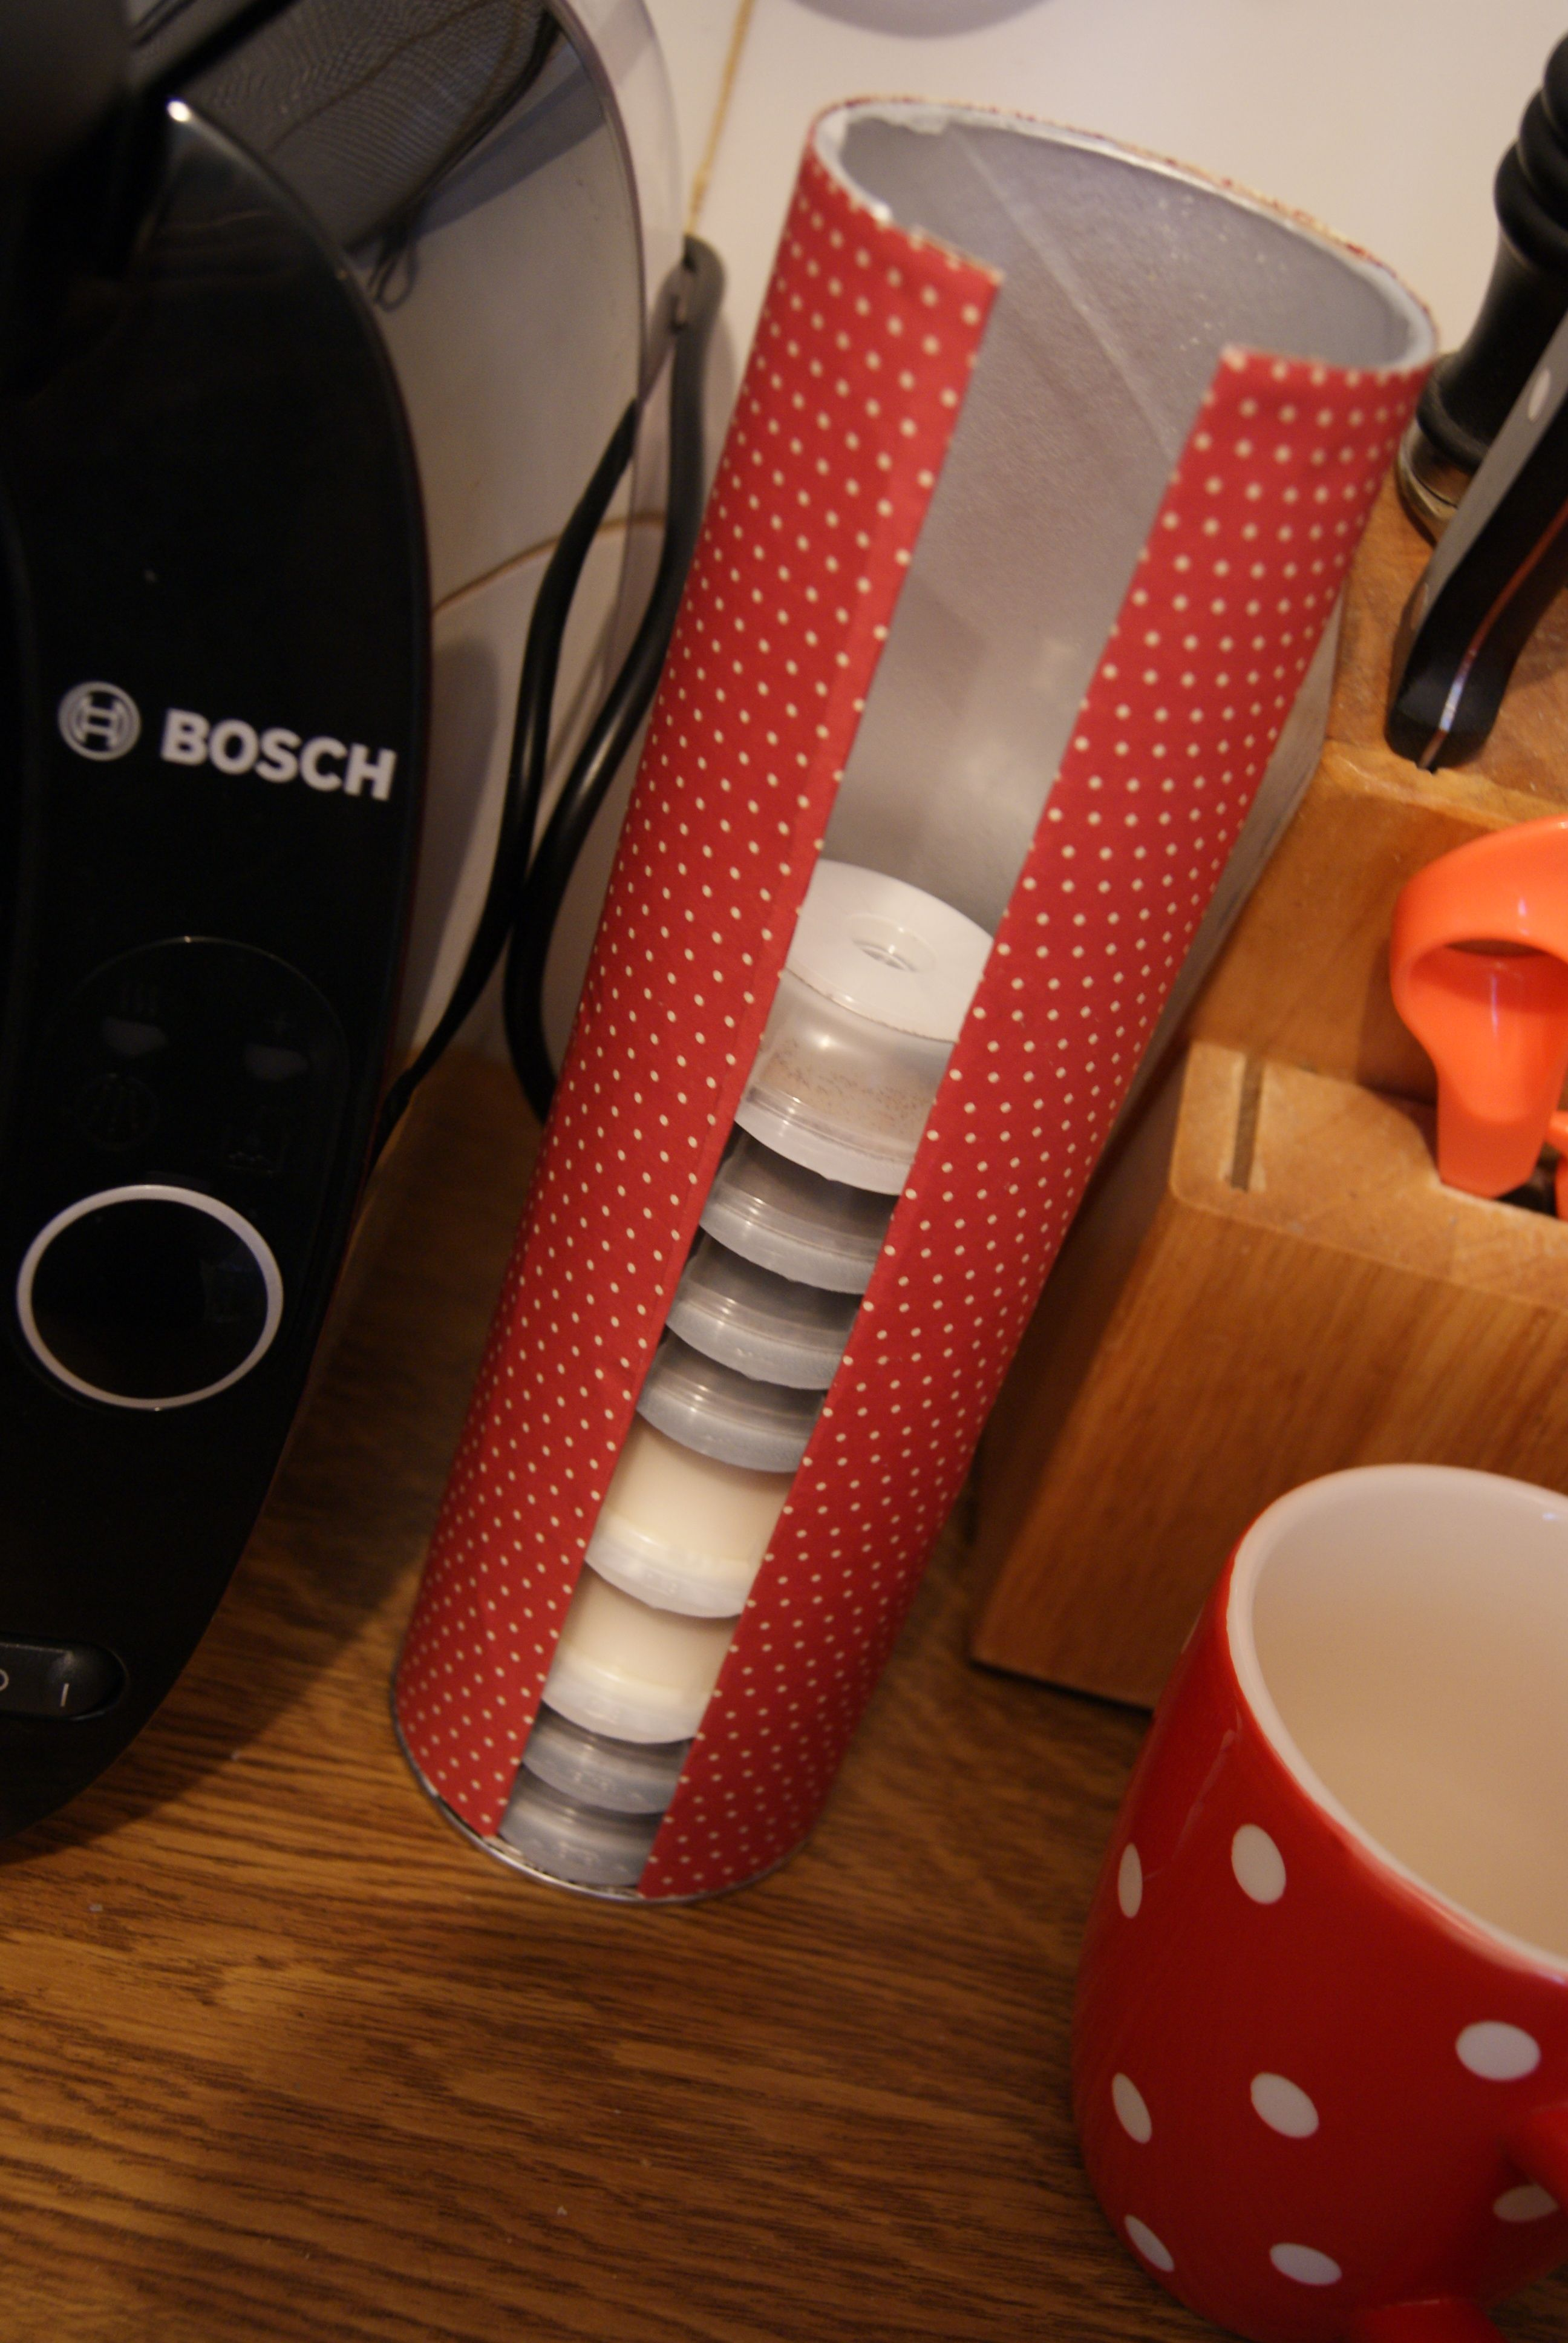 Diy tassimo pod holder made with a pringles tube and pretty paper